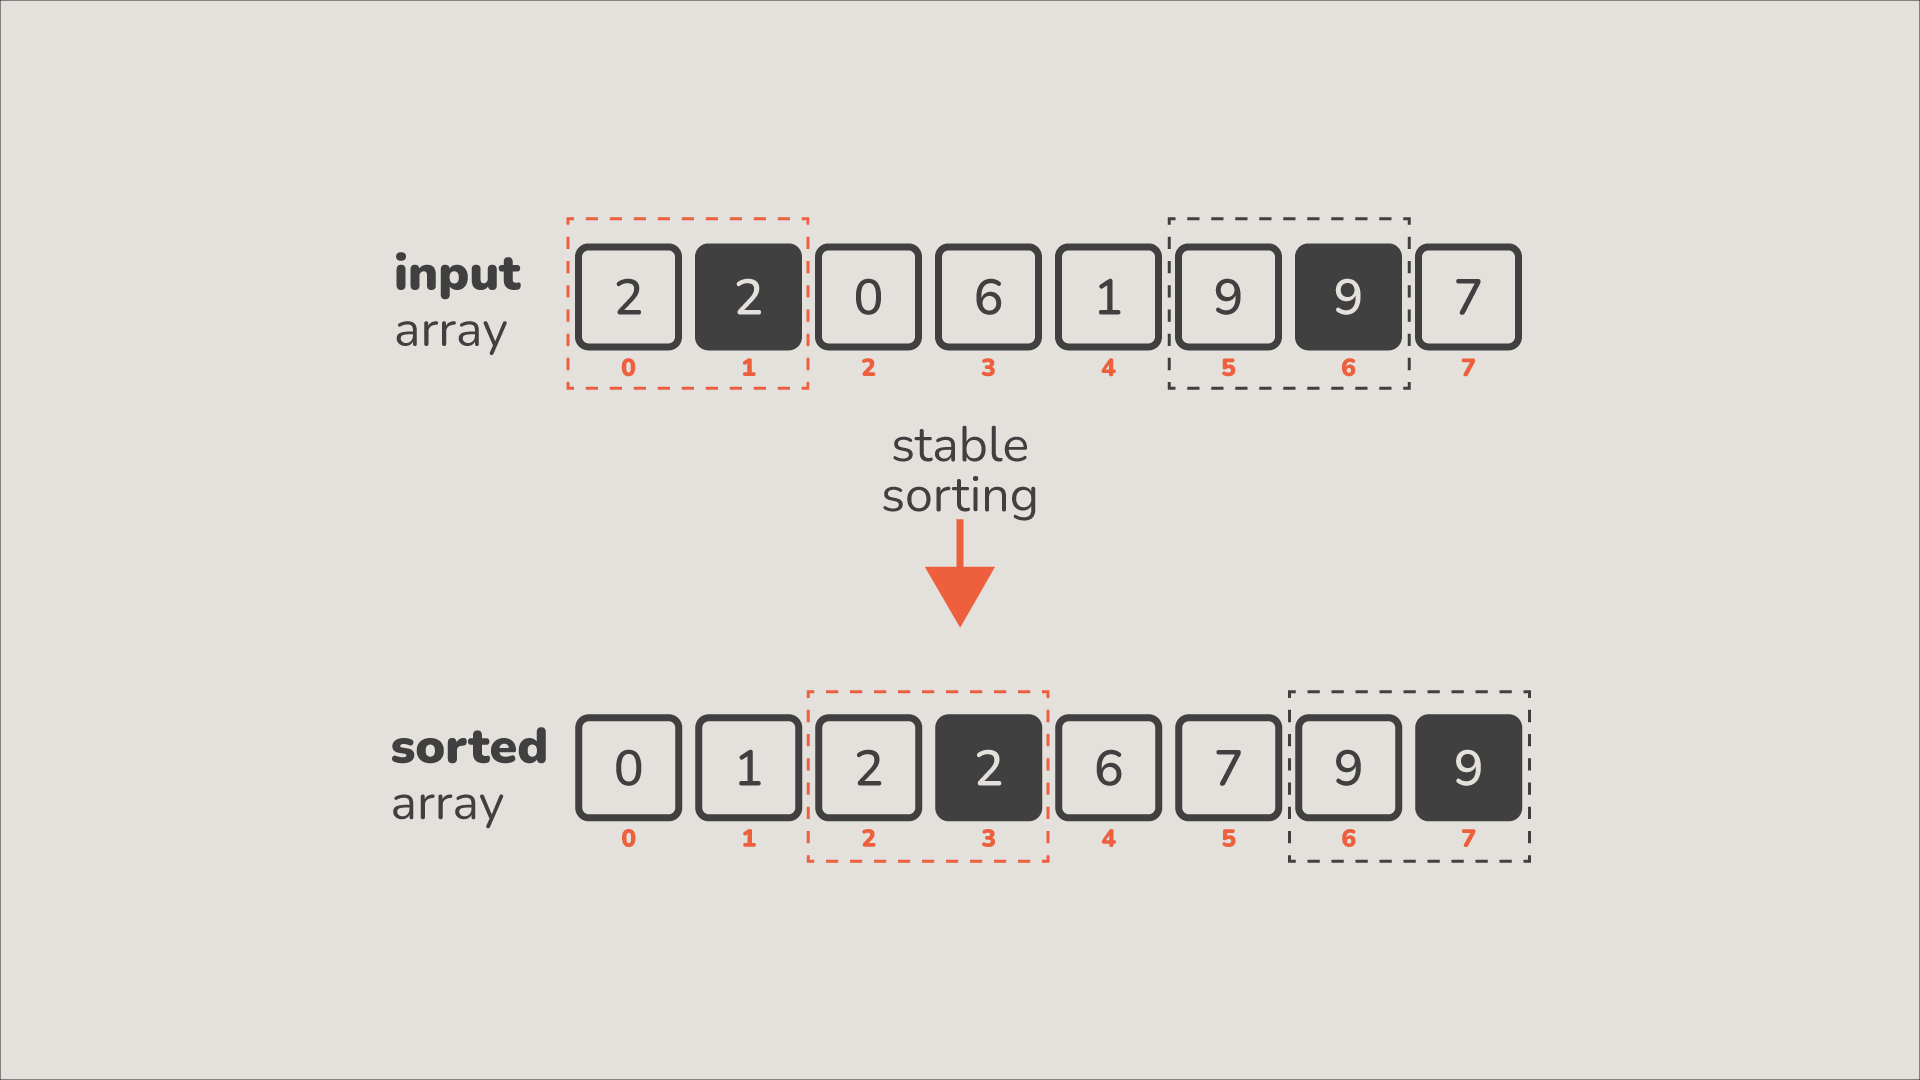 stable sorting